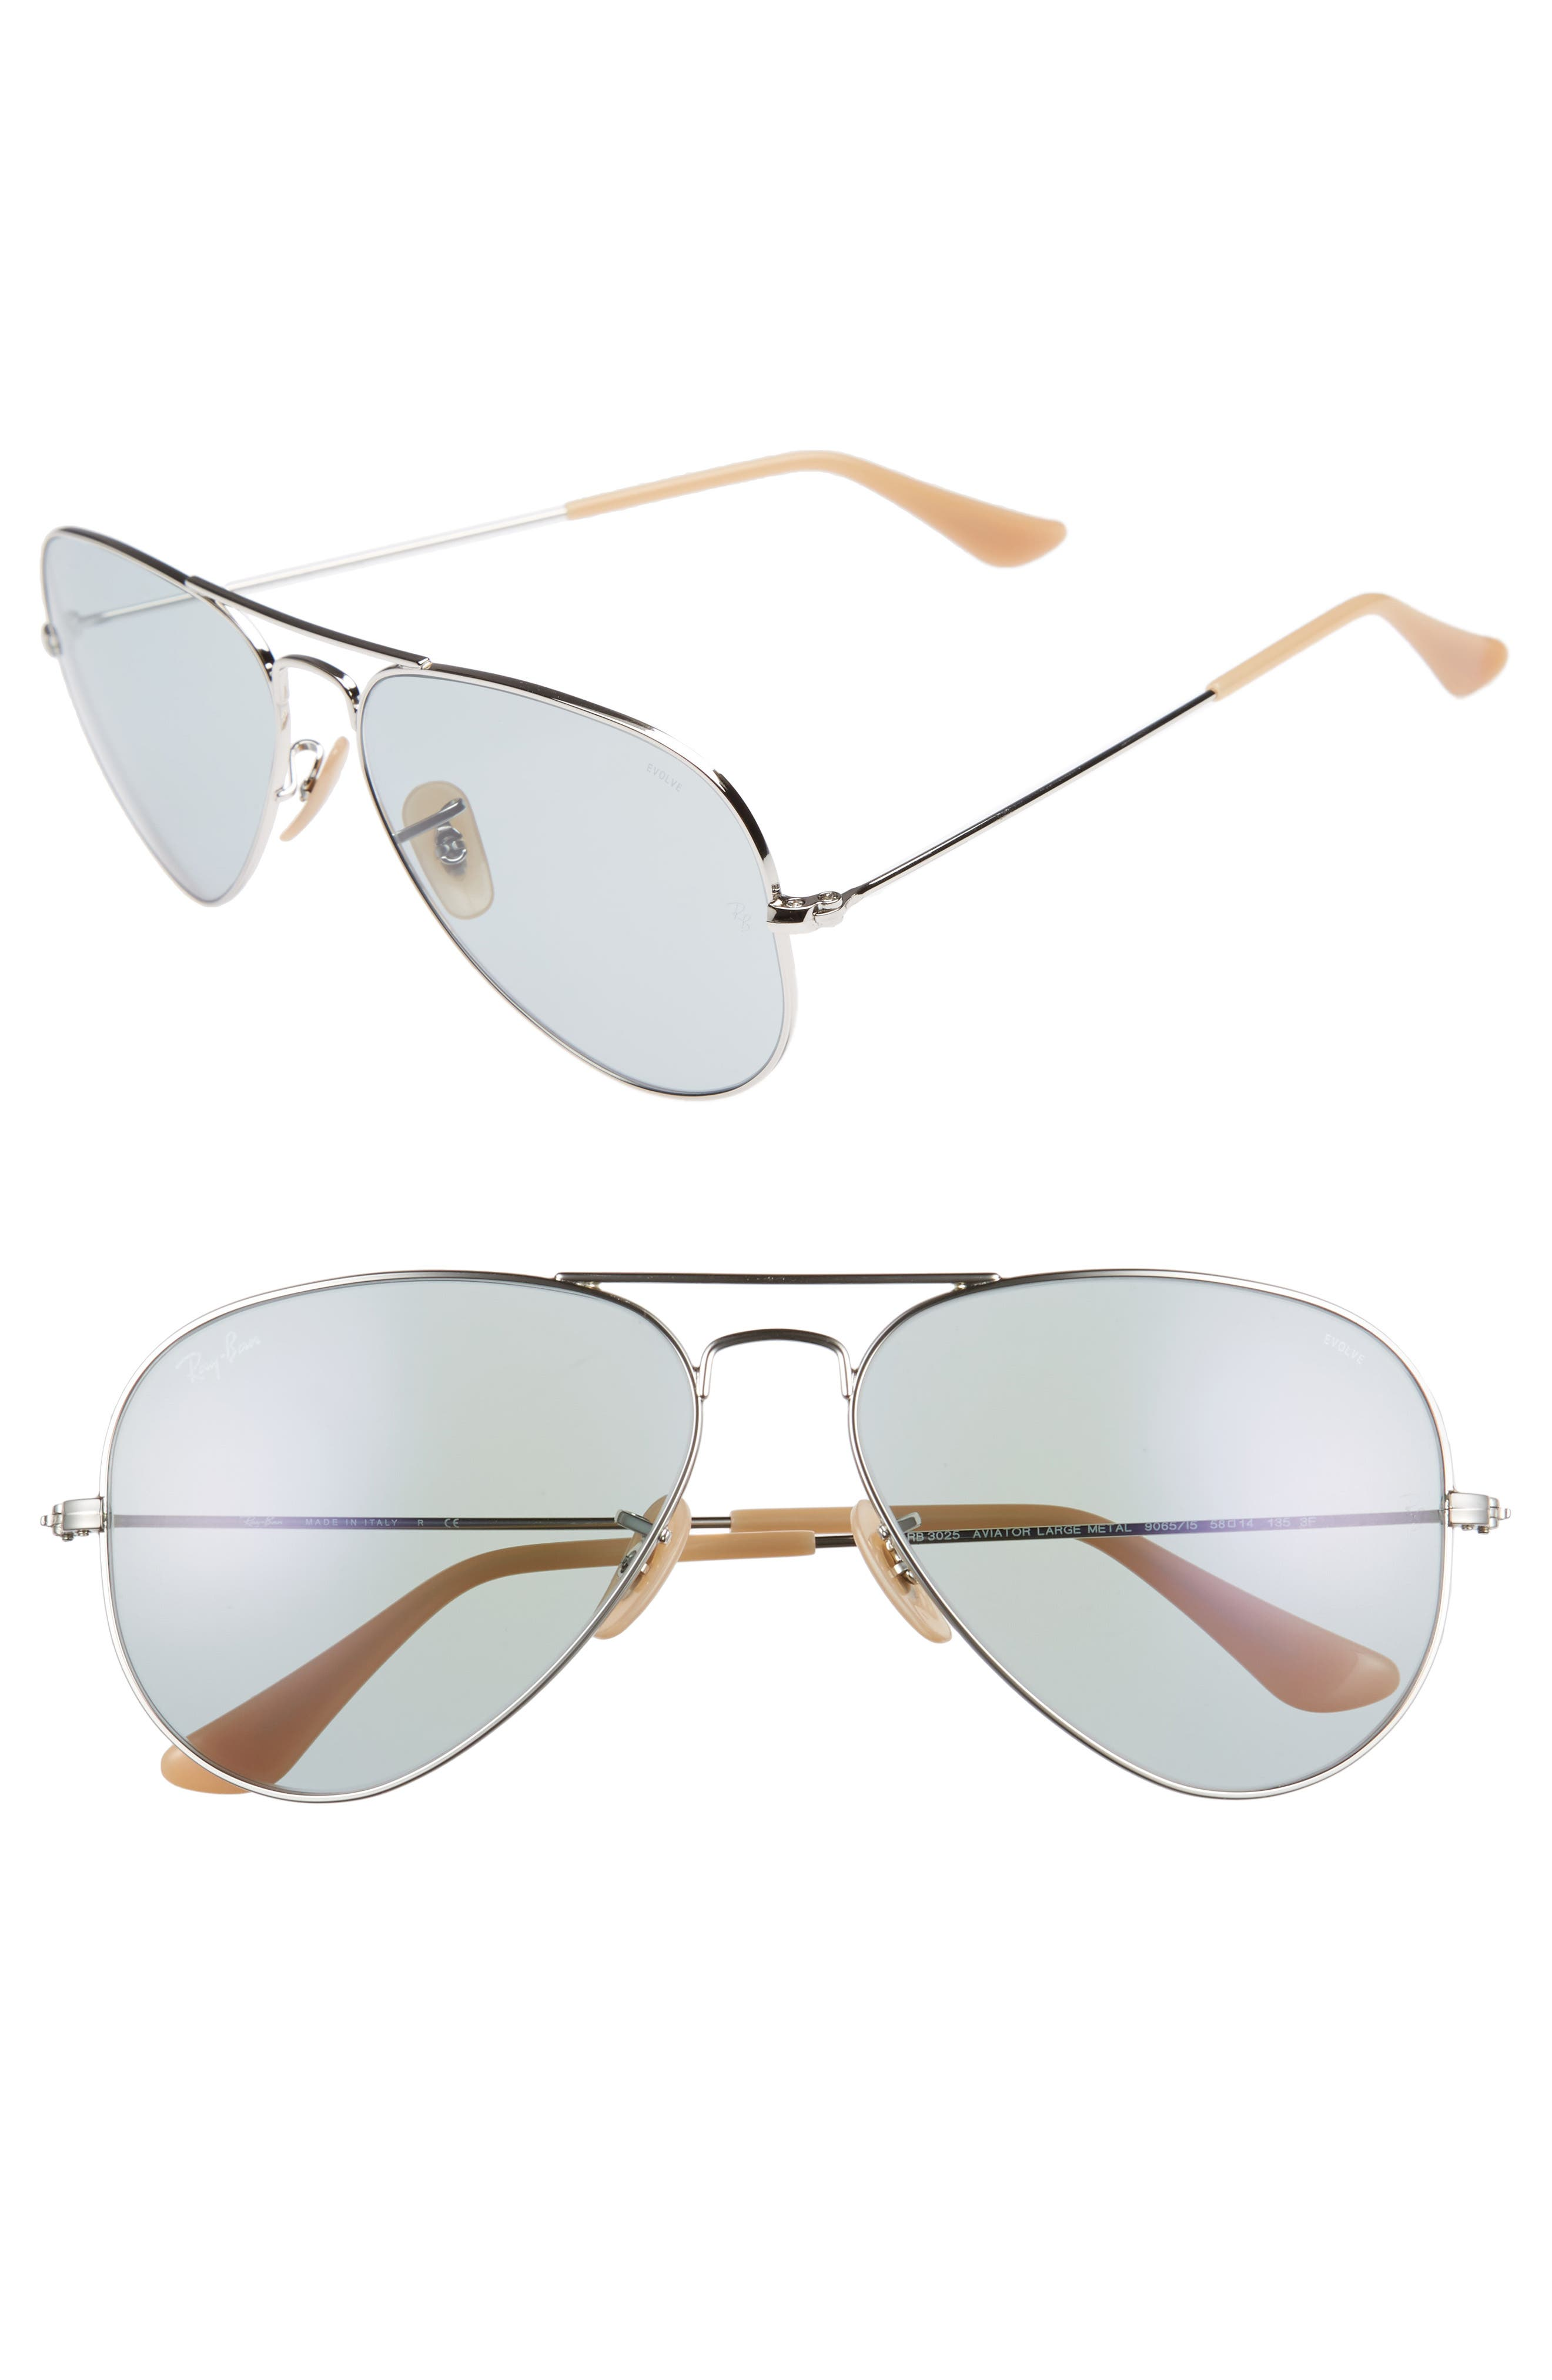 58mm Photochromic Aviator Sunglasses,                             Main thumbnail 1, color,                             Silver Blue